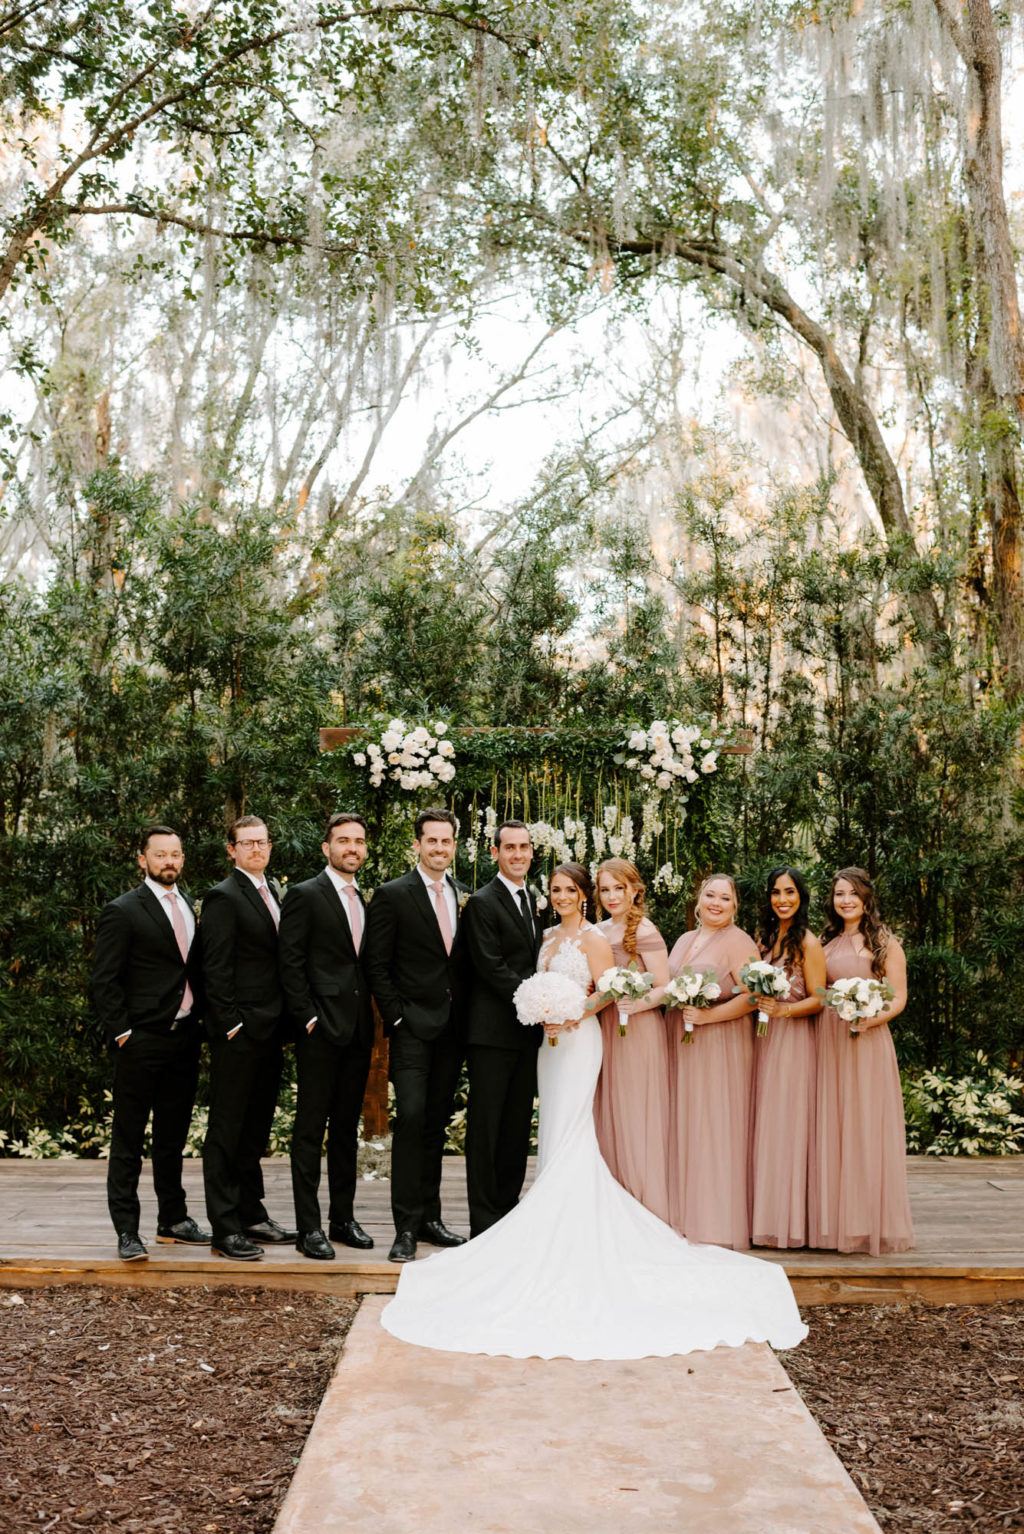 Outdoor Wedding Party Portrait in front of Wedding Ceremony Backdrop wood Arch Arbor with Greenery and White Roses and Suspended Hanging Stock Flowers | Groom and Groomsmen Wearing Classic Black Suit Tux | White Peony Bridal Bouquet | Sheath Illusion Lace Bridal Gown wedding Dress | Long Dusty Rose Mauve Pink Bridesmaid Dresses